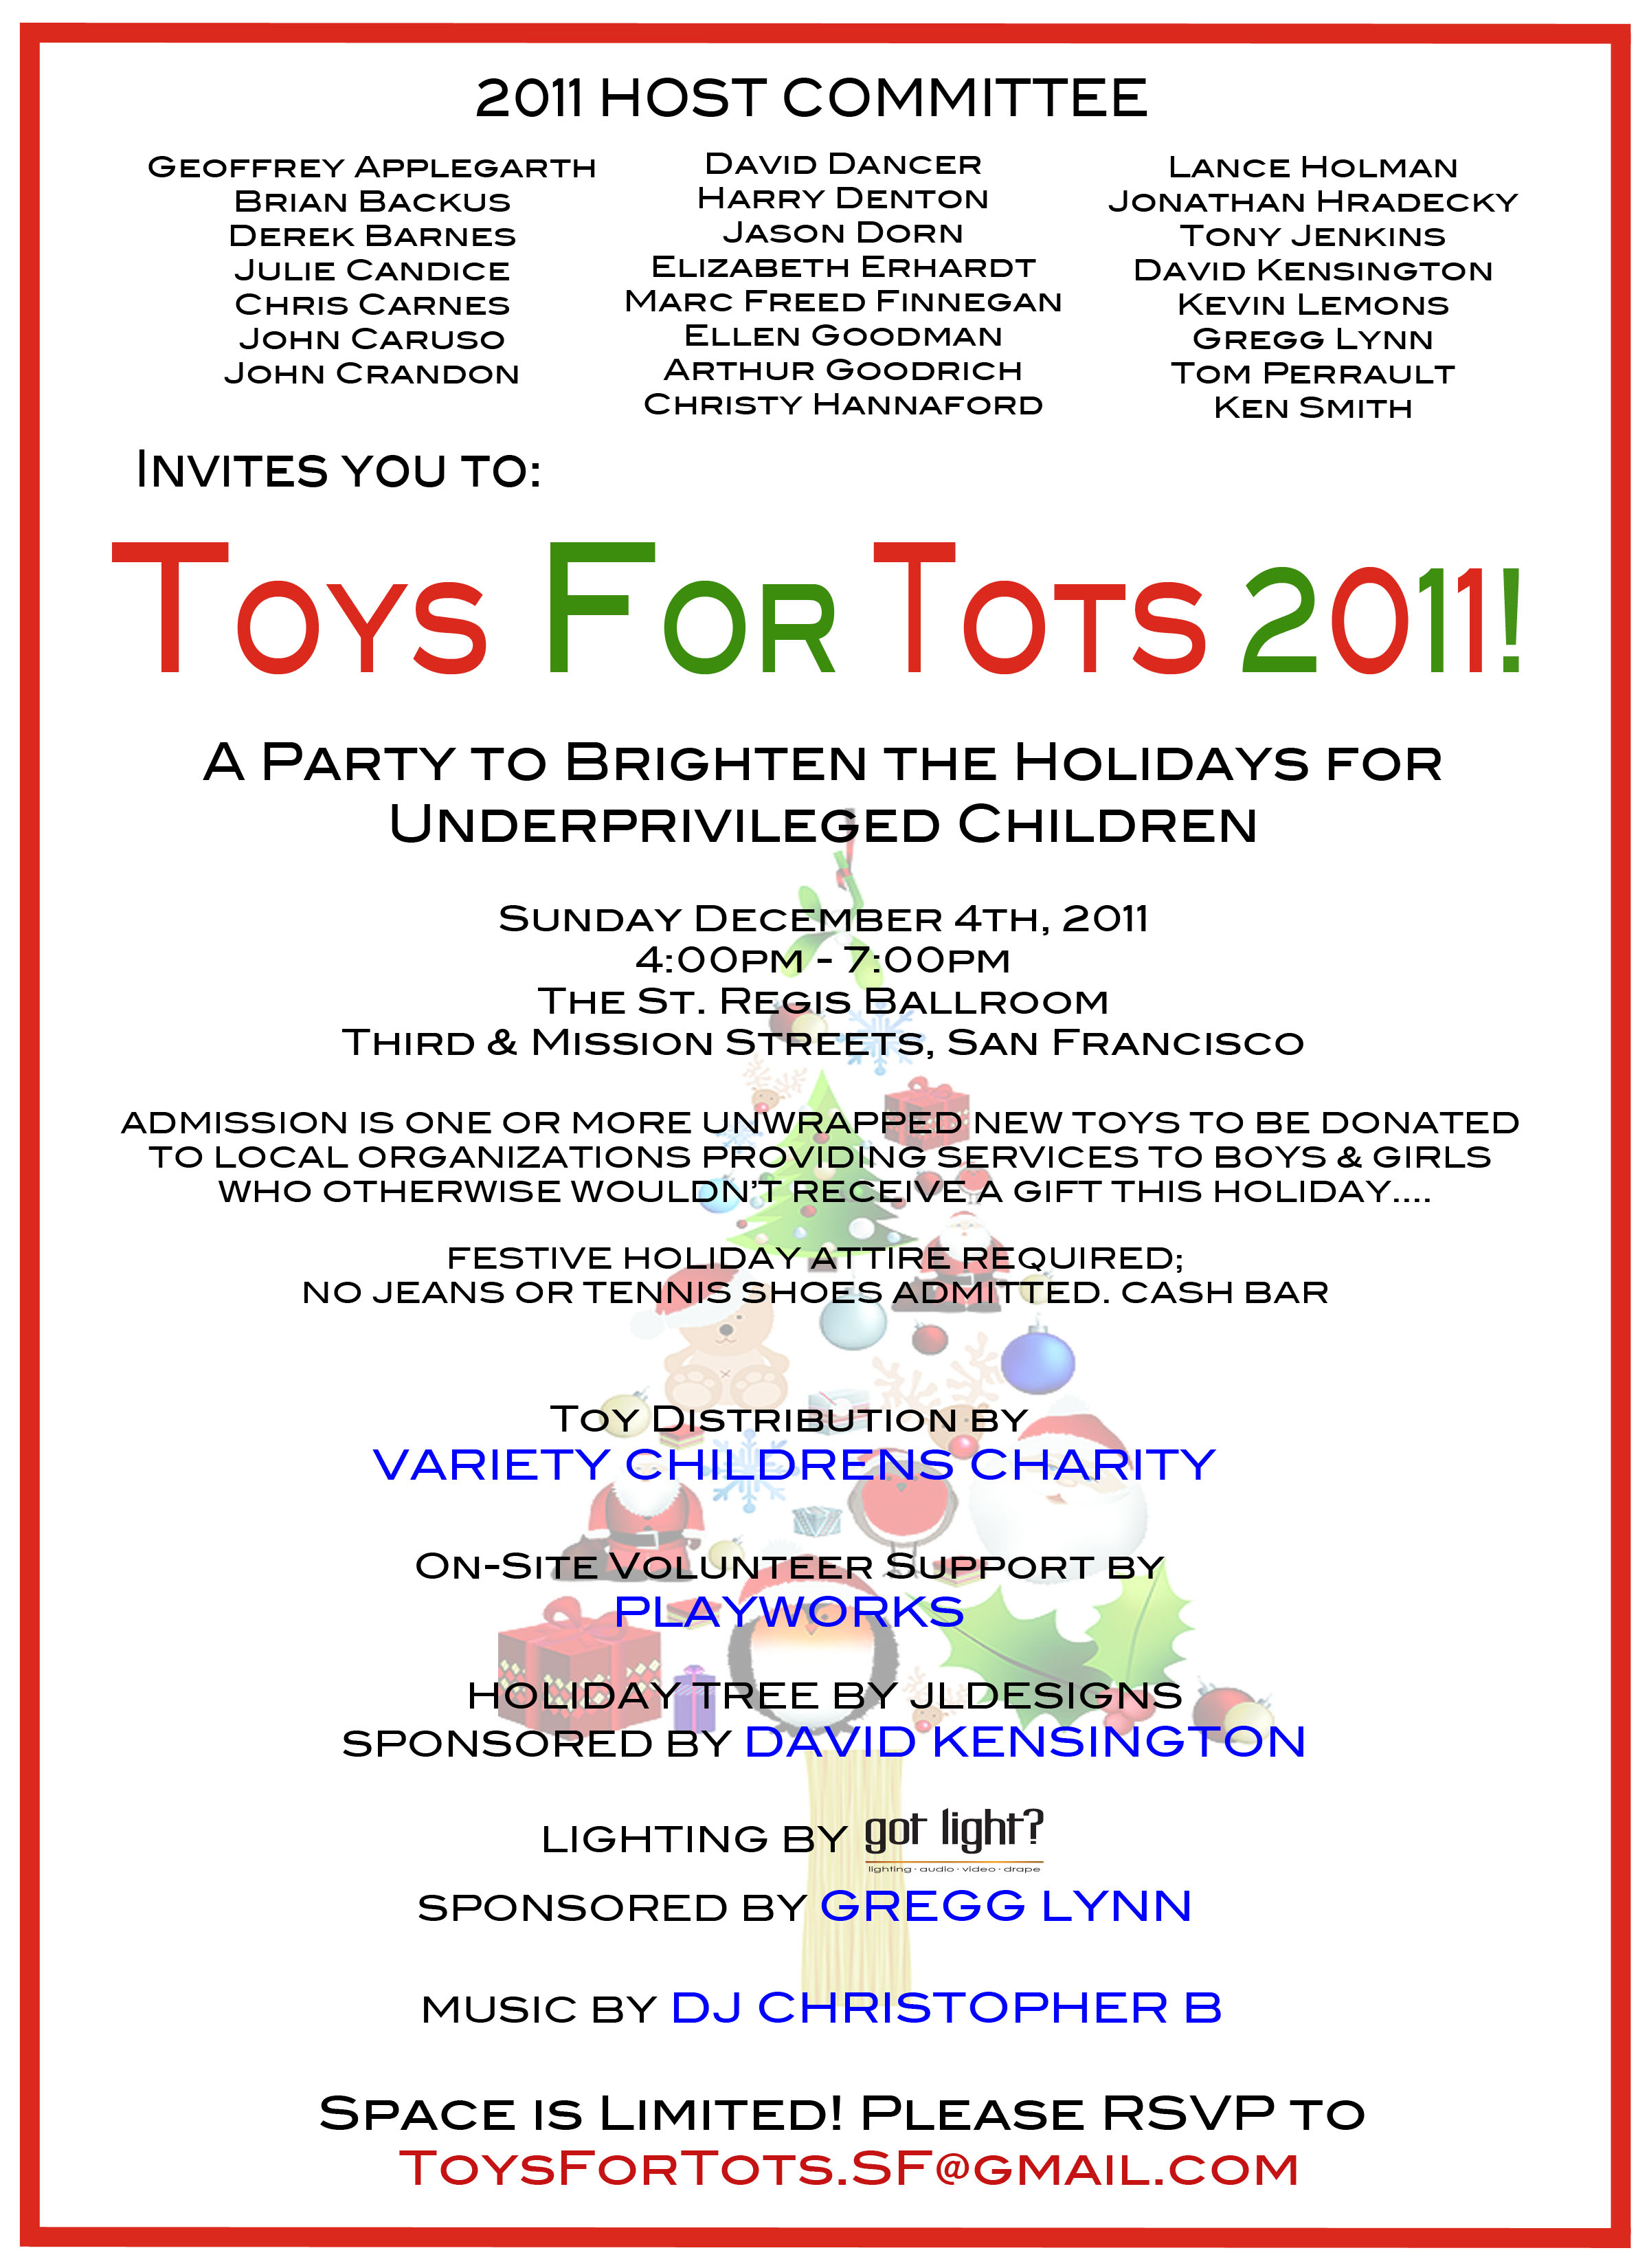 Toys For Tots Flier